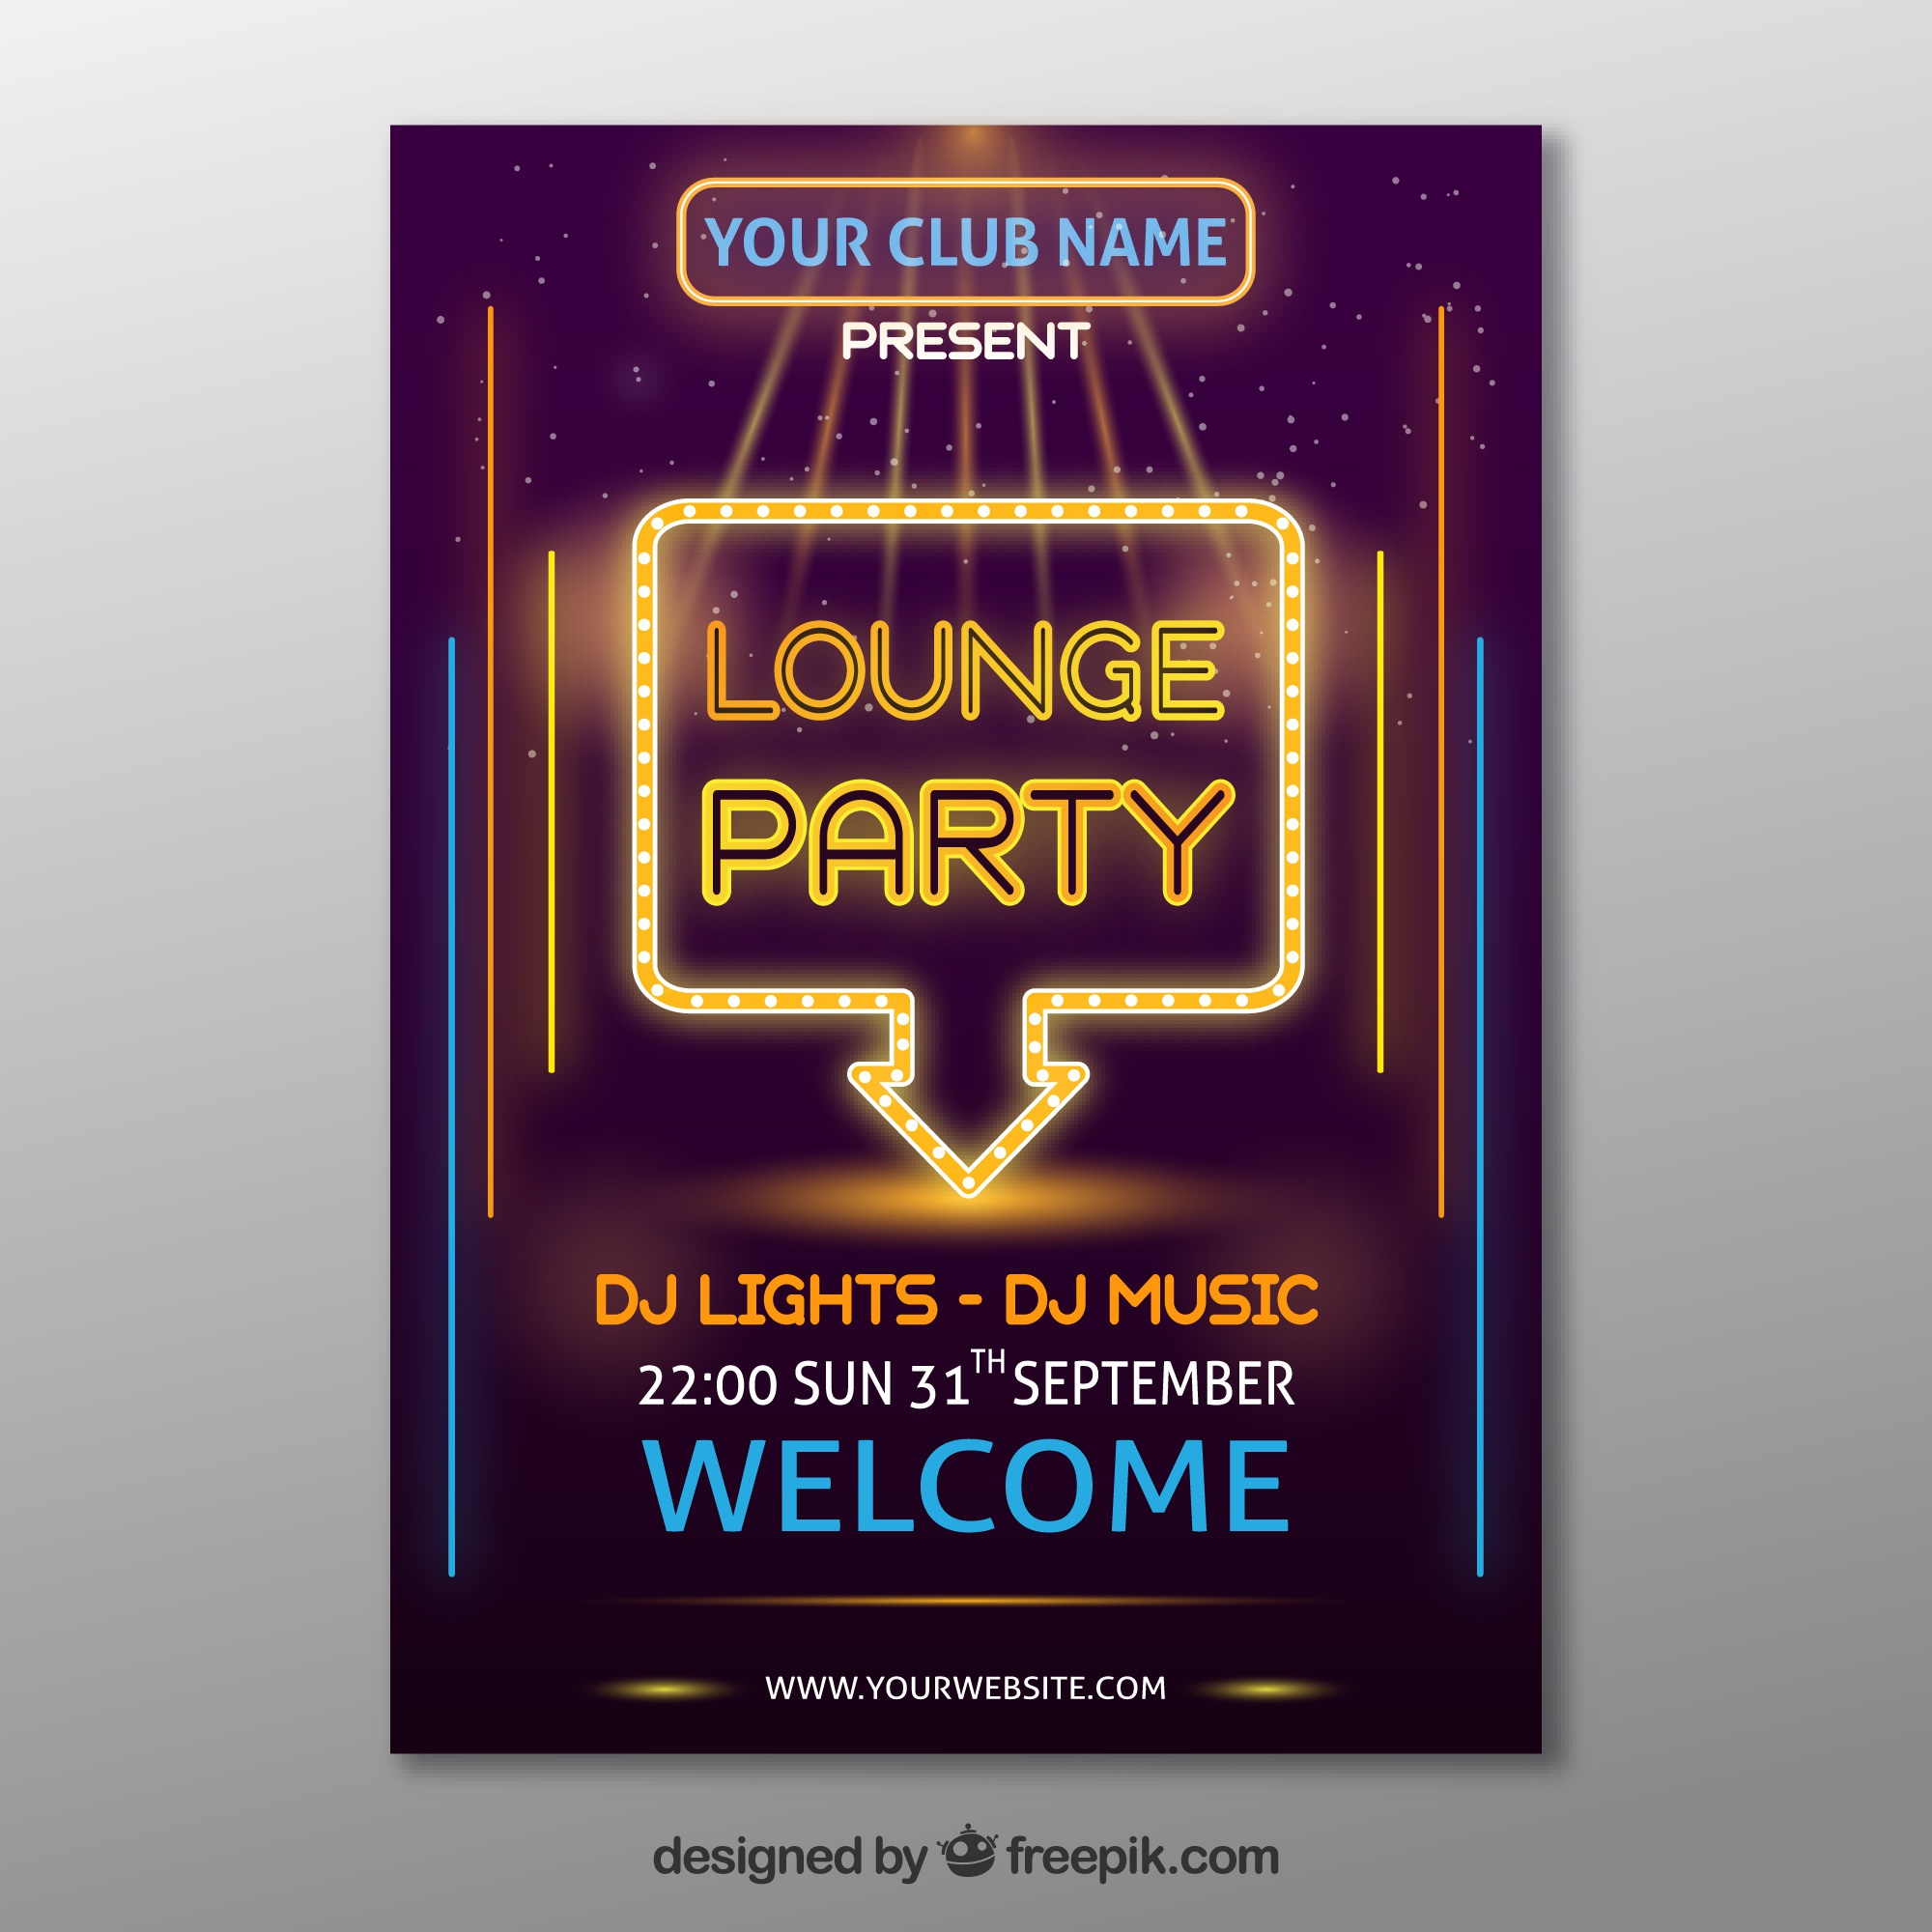 Elegant party poster with neon lights